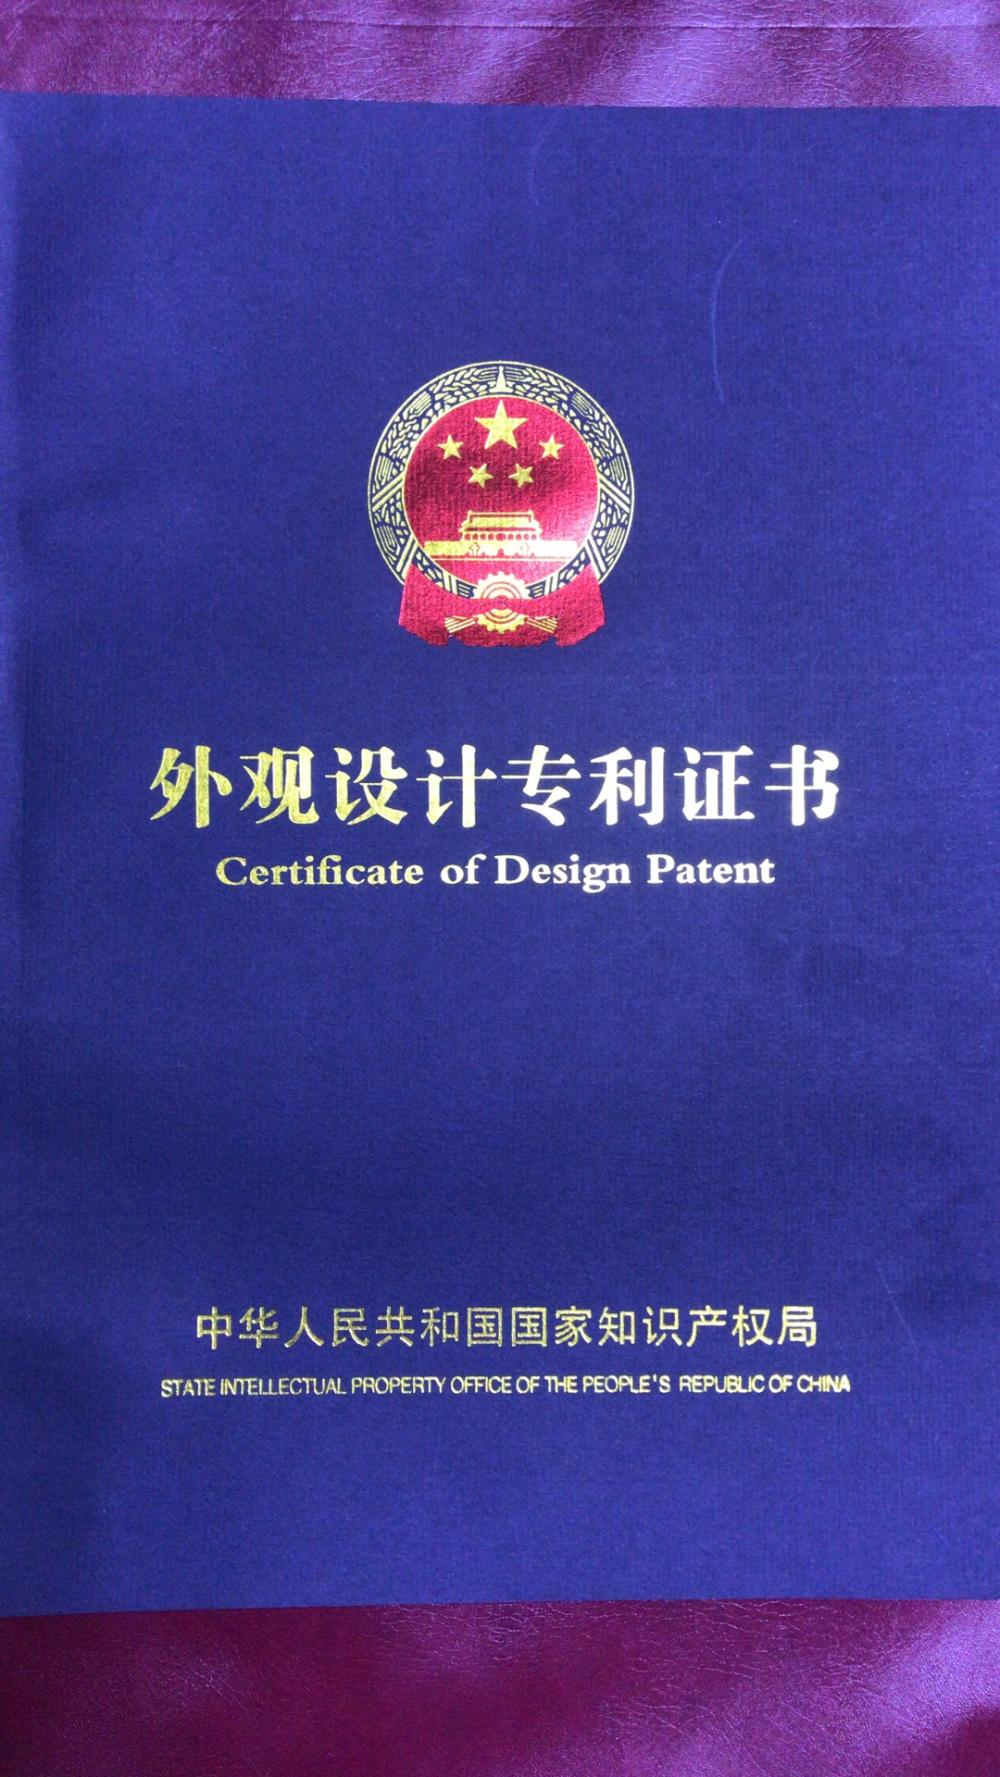 Certificate of Design Patent